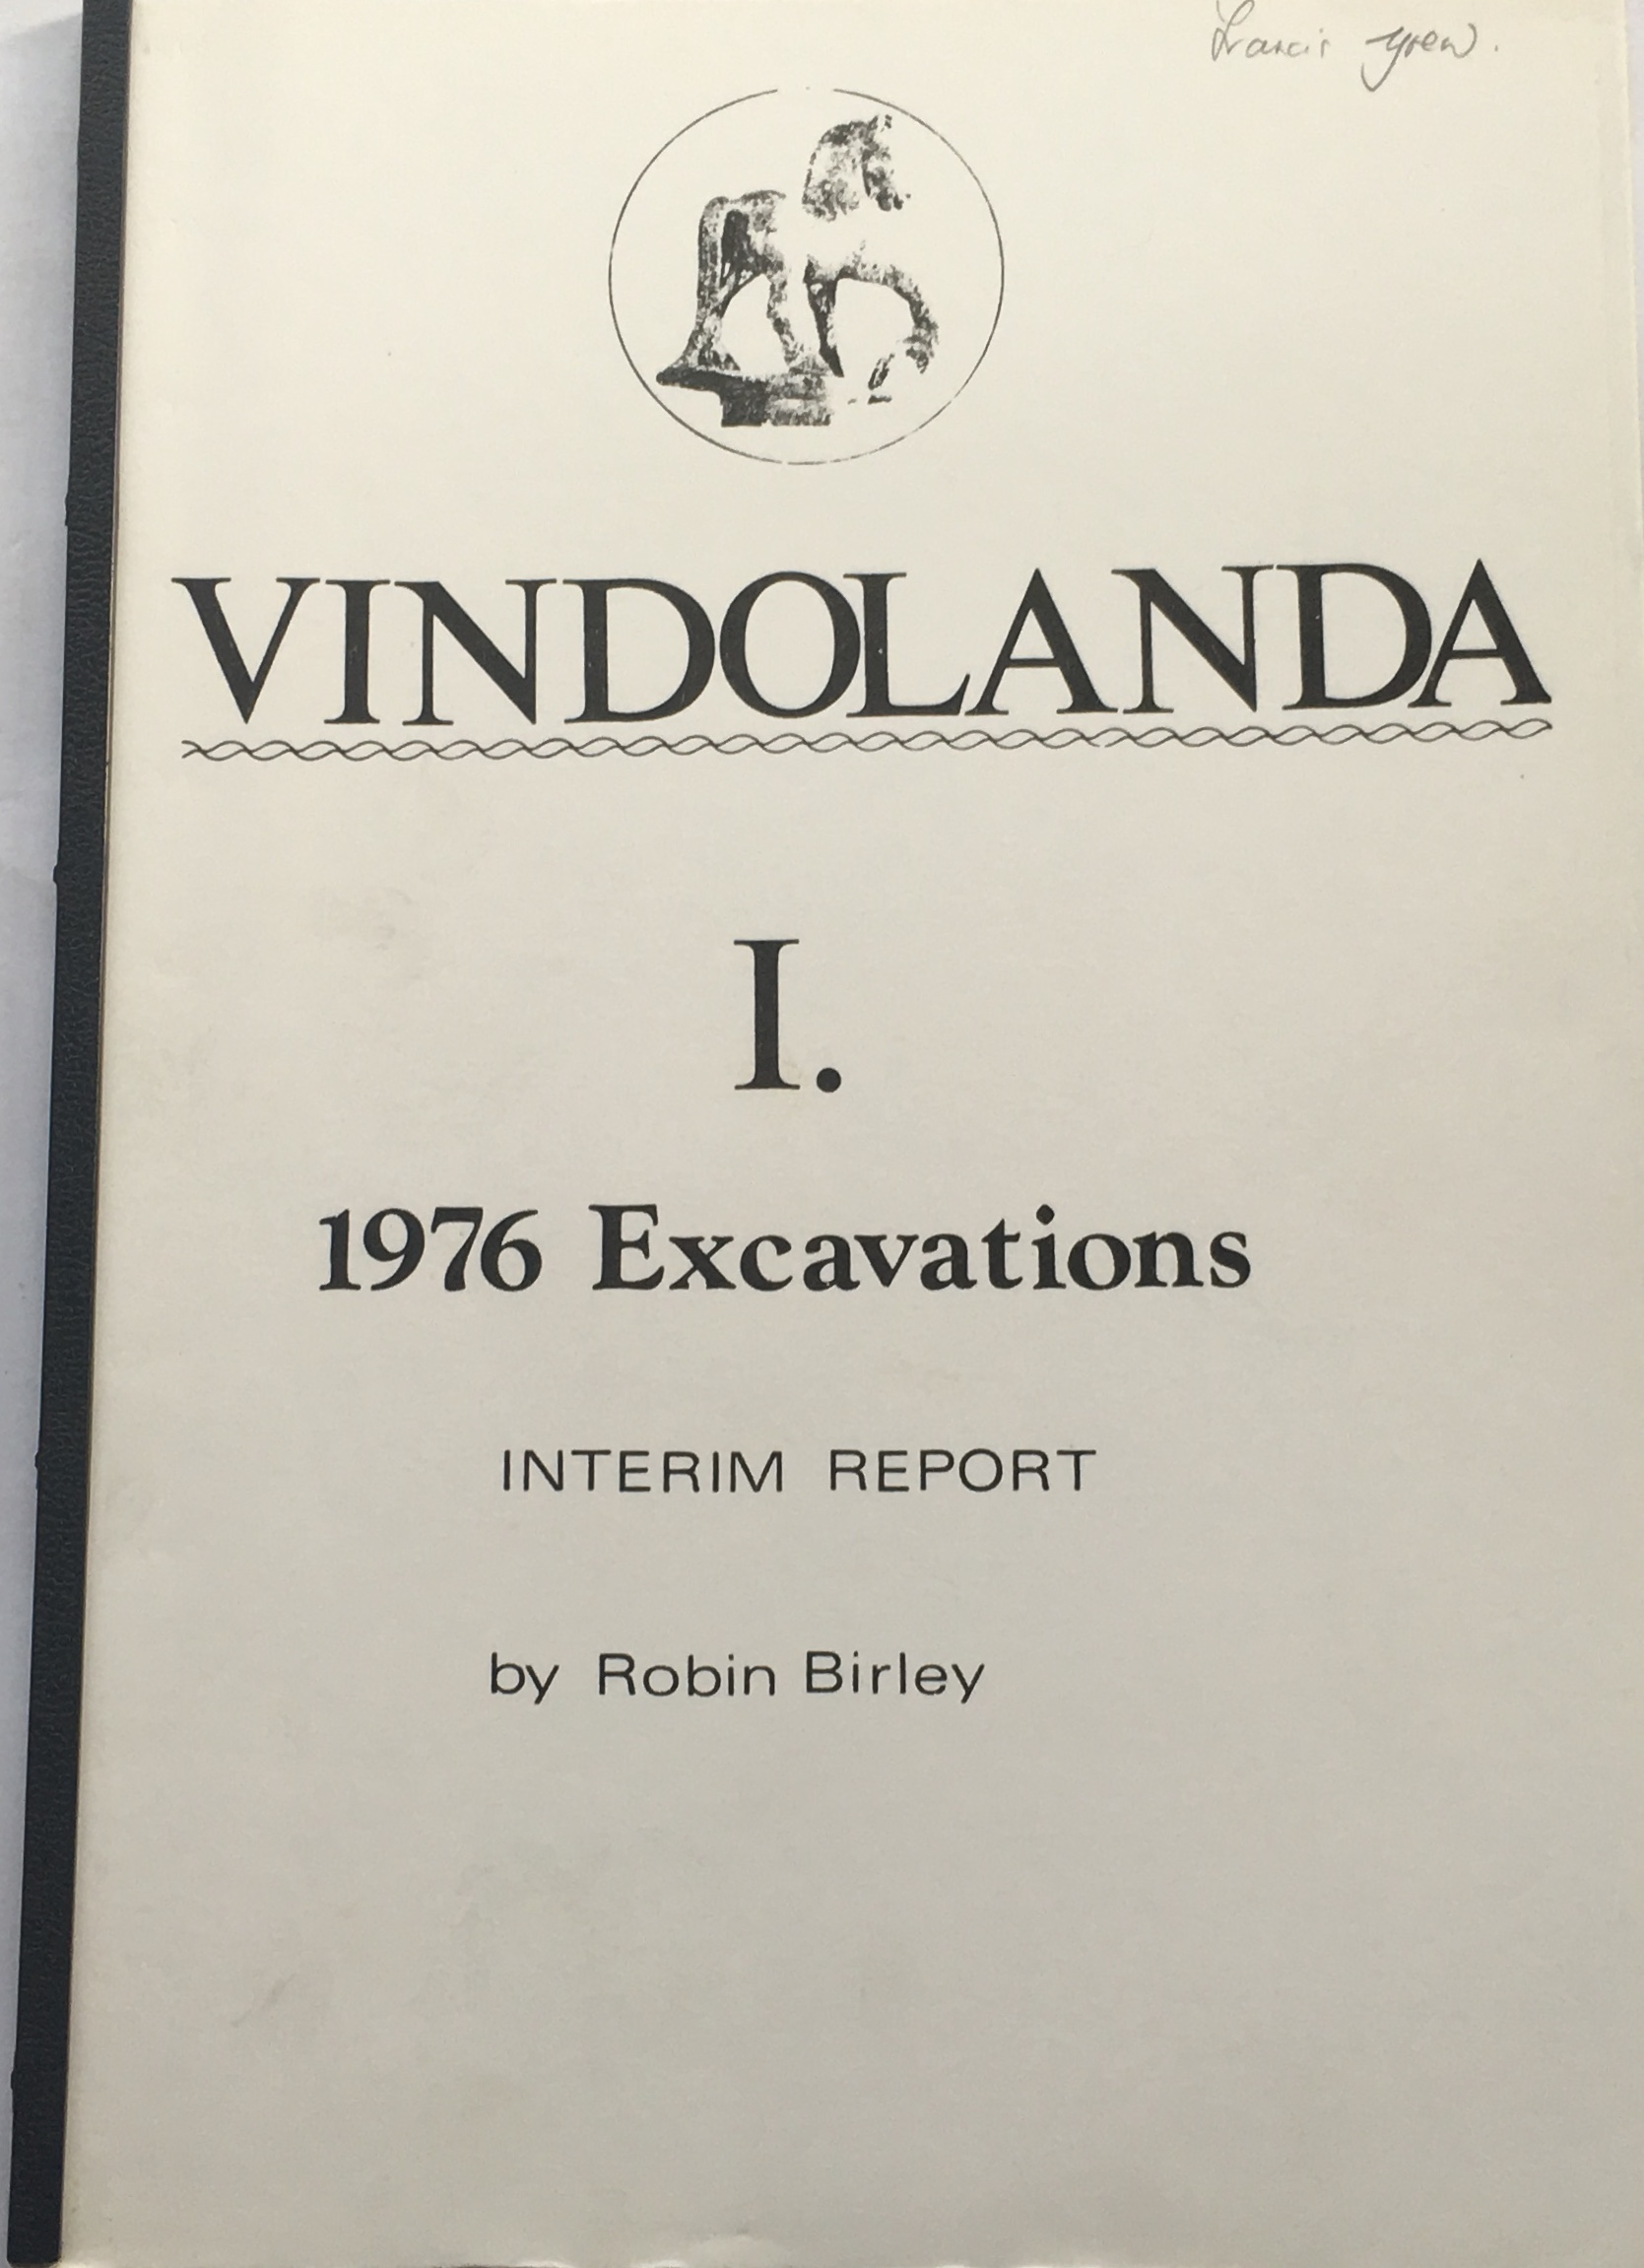 Image for The 1976 Excavations at Vindolanda, Interim Report :Vindolanda I. 1976 Excavations, Interim Report